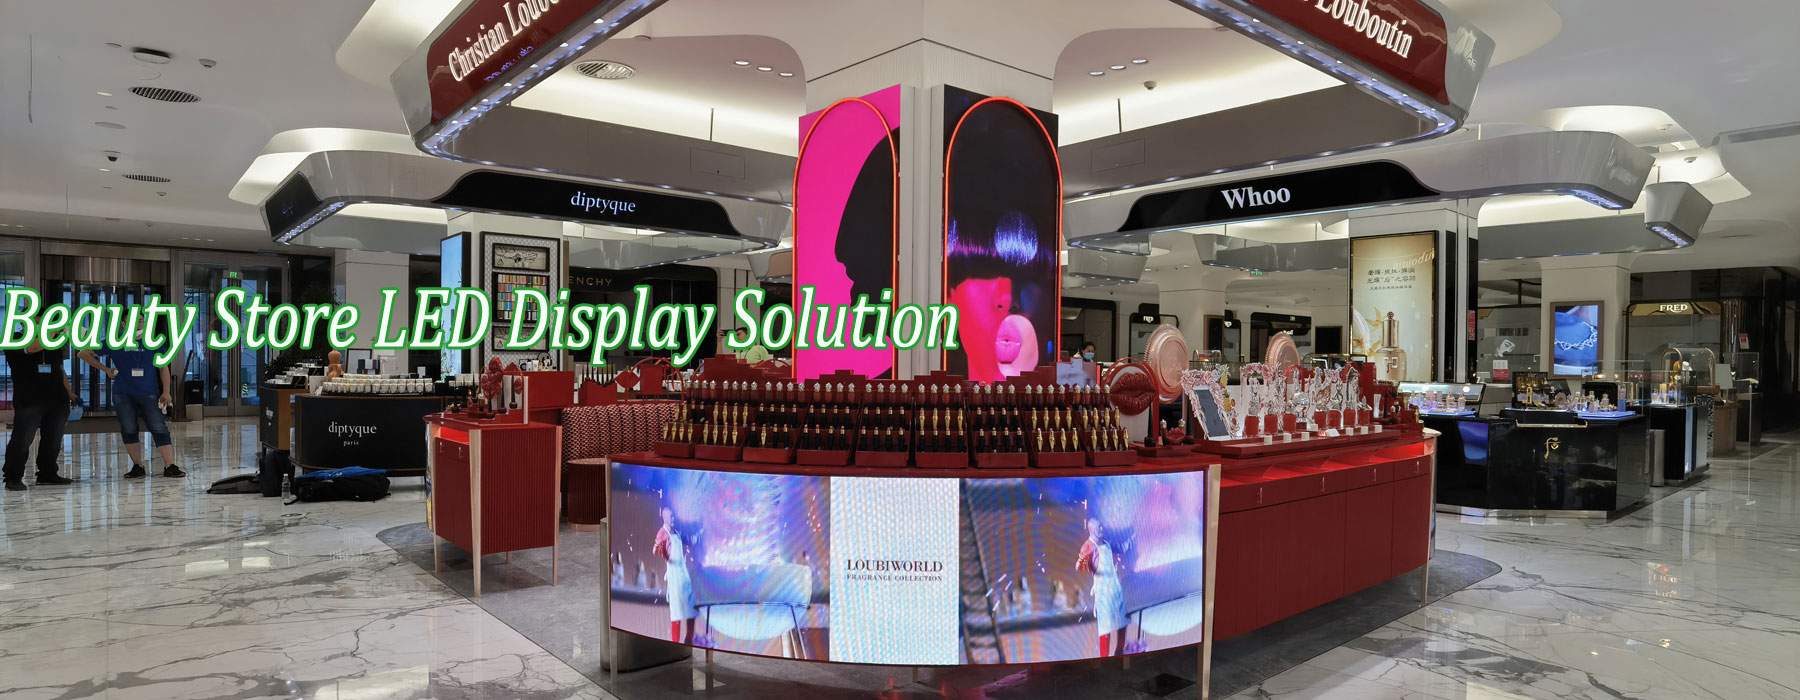 Beauty-Store-LED-Display-Solution